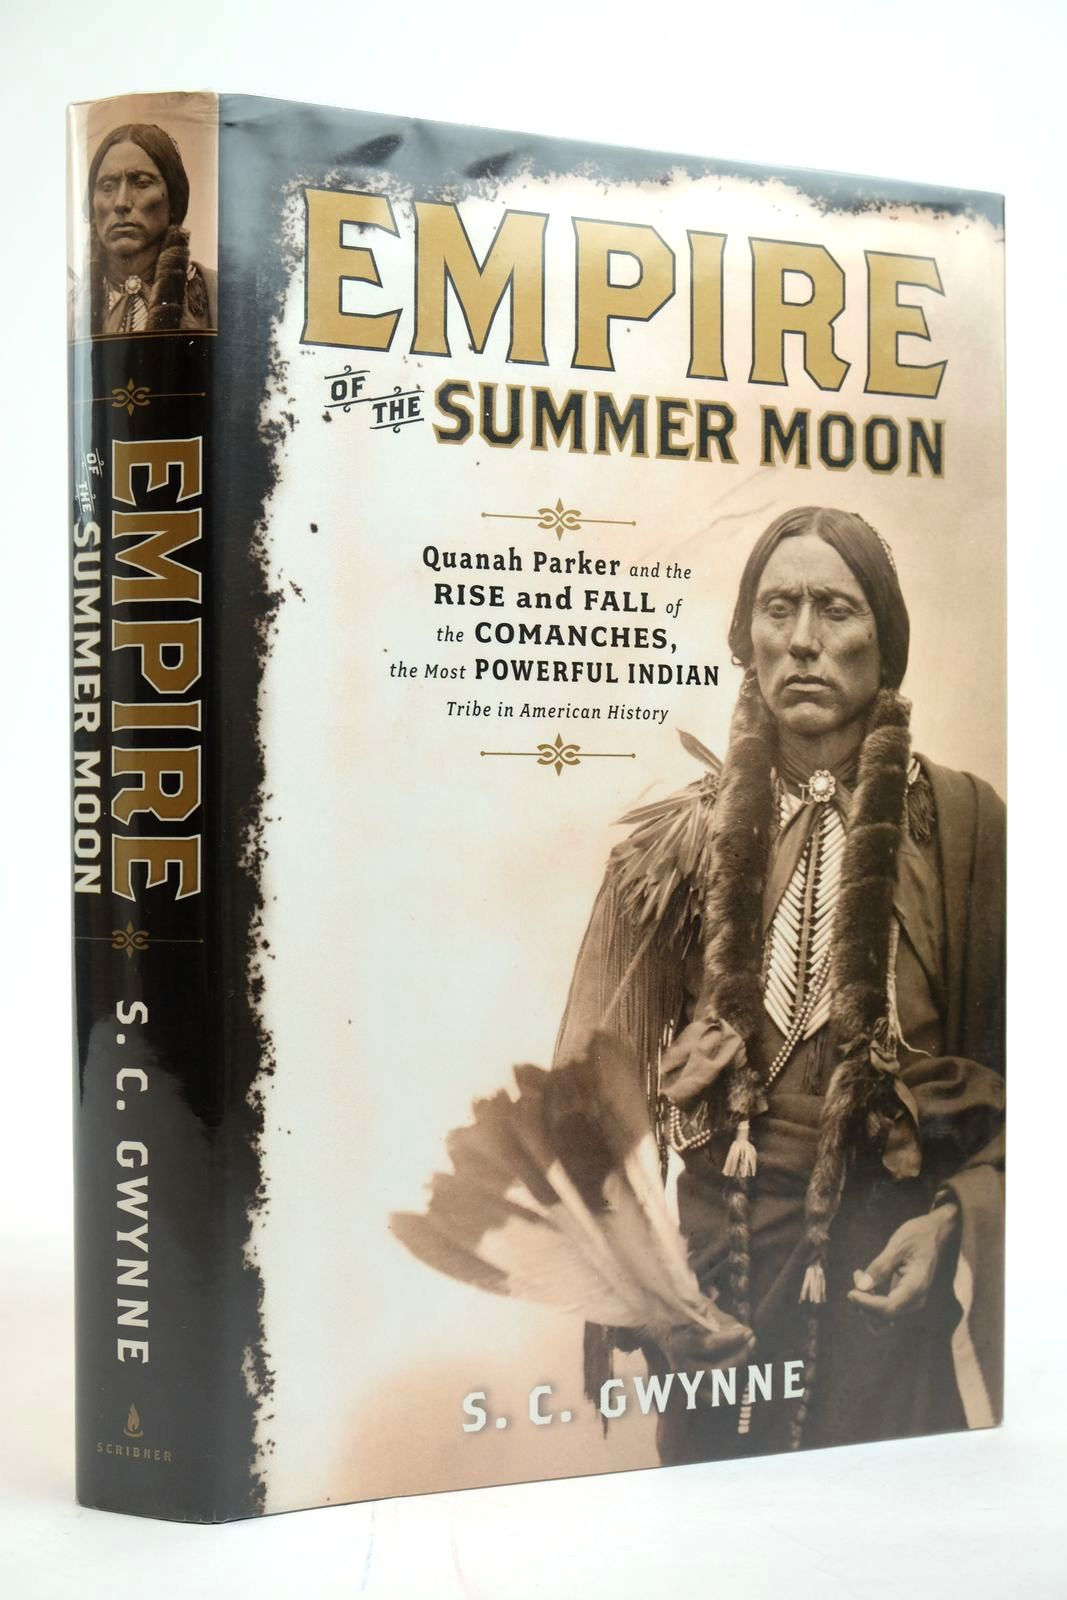 Photo of EMPIRE OF THE SUMMER MOON written by Gwynne, S.C. published by Scribner (STOCK CODE: 2135259)  for sale by Stella & Rose's Books